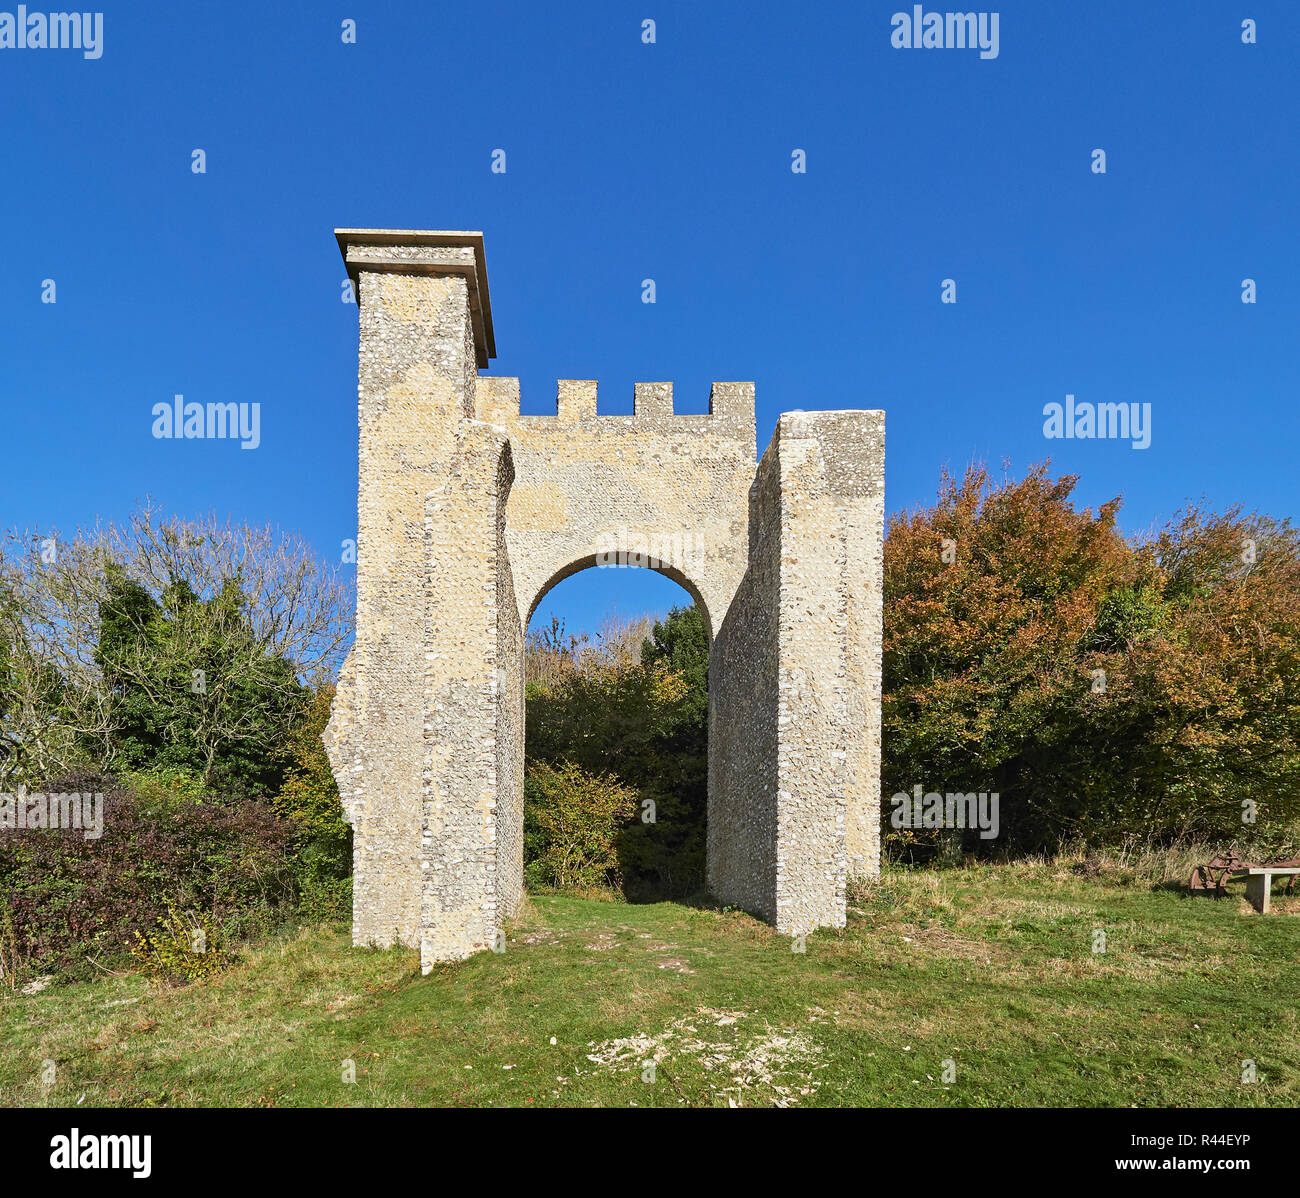 Slindon folly or Nore Folly on the Slindon estate West Sussex - Stock Image